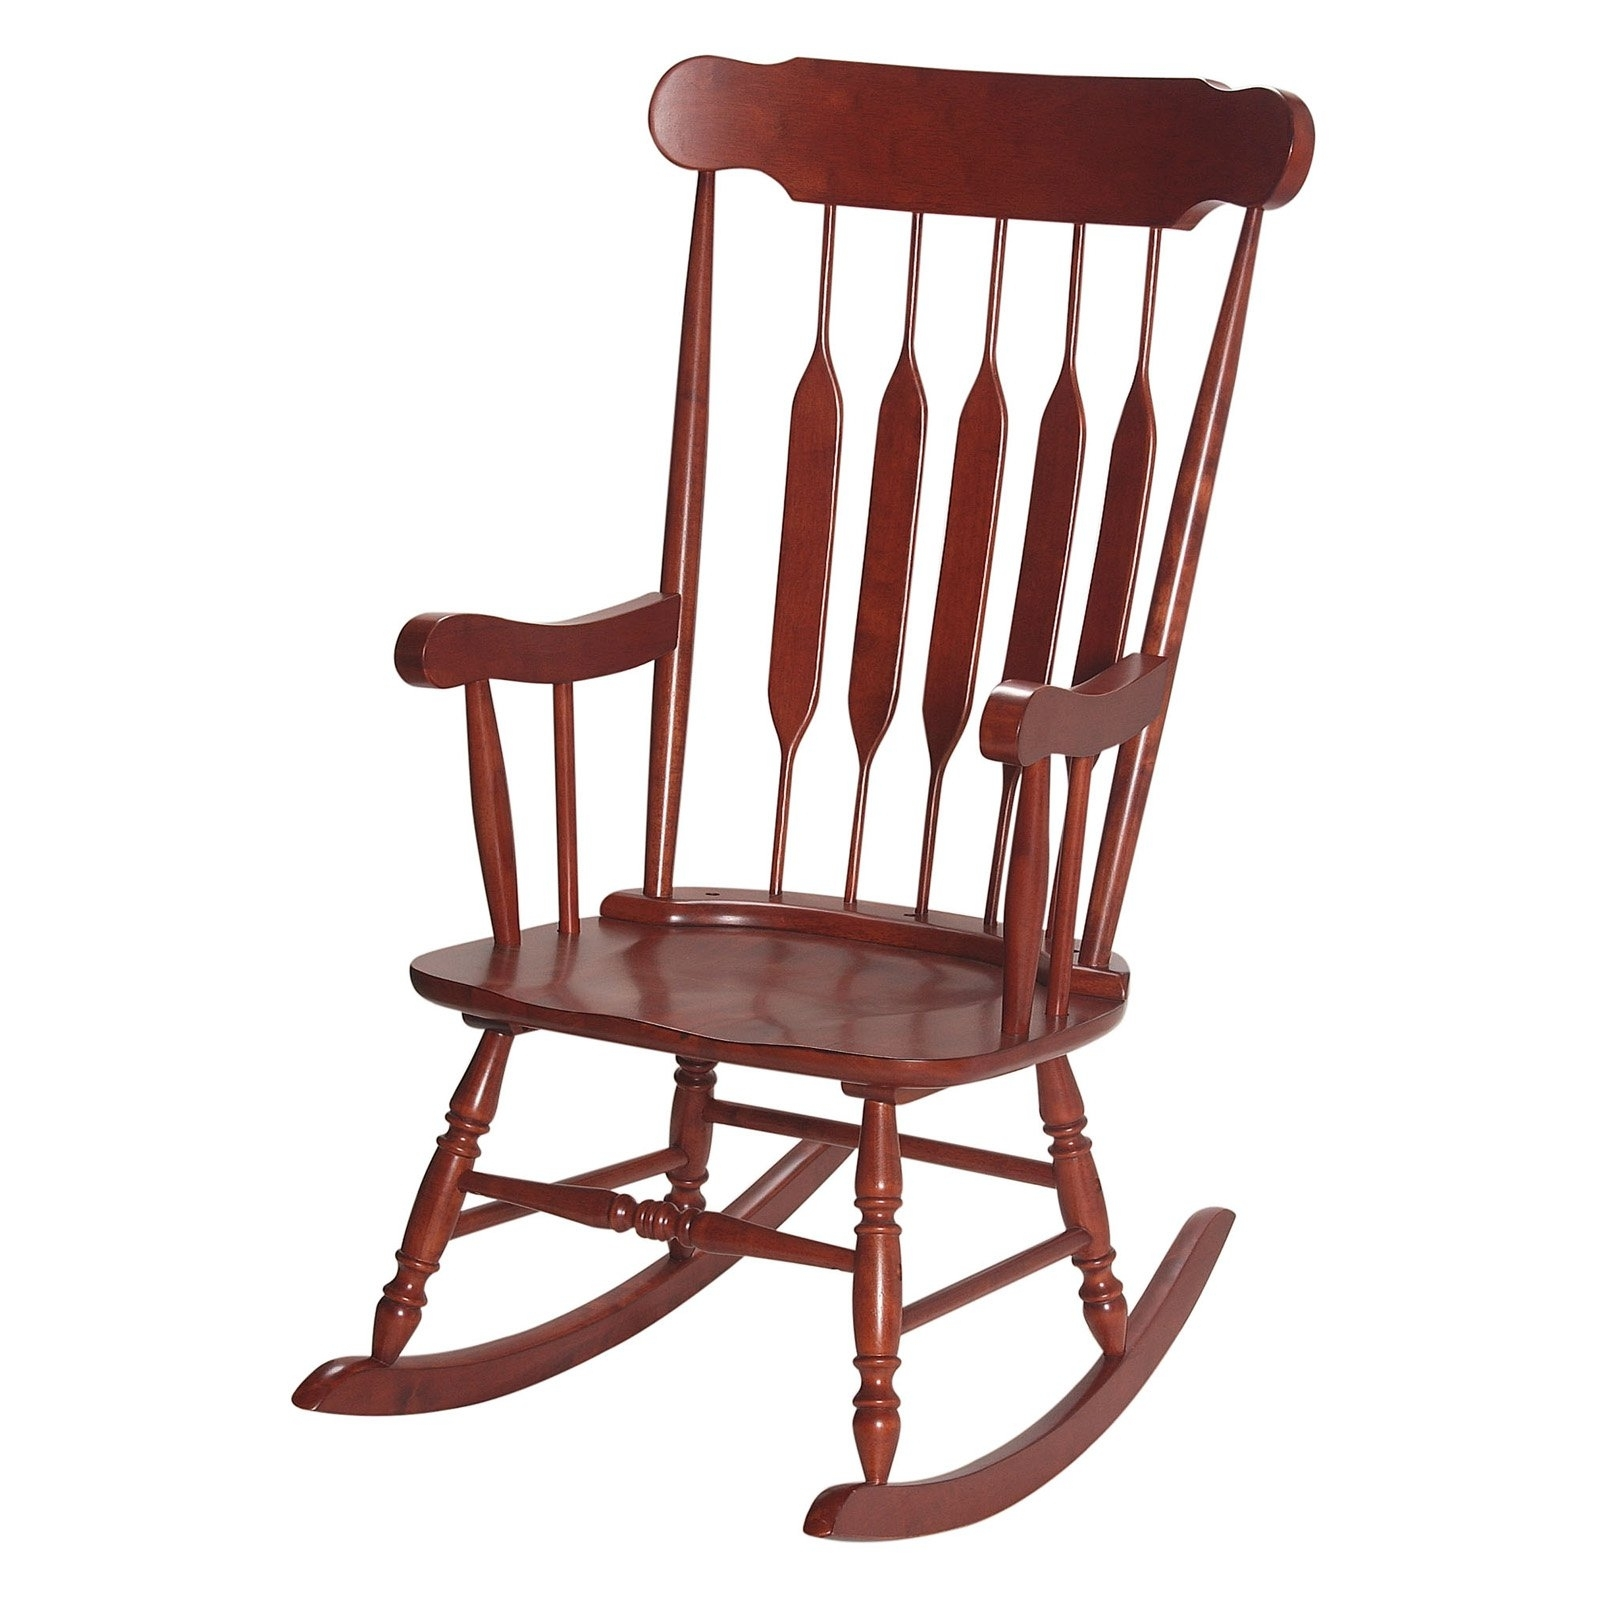 Rocking Chairs For Adults Within Recent Gift Mark Mission Style Wooden Rocking Chair With Upholstered Seat (View 16 of 20)